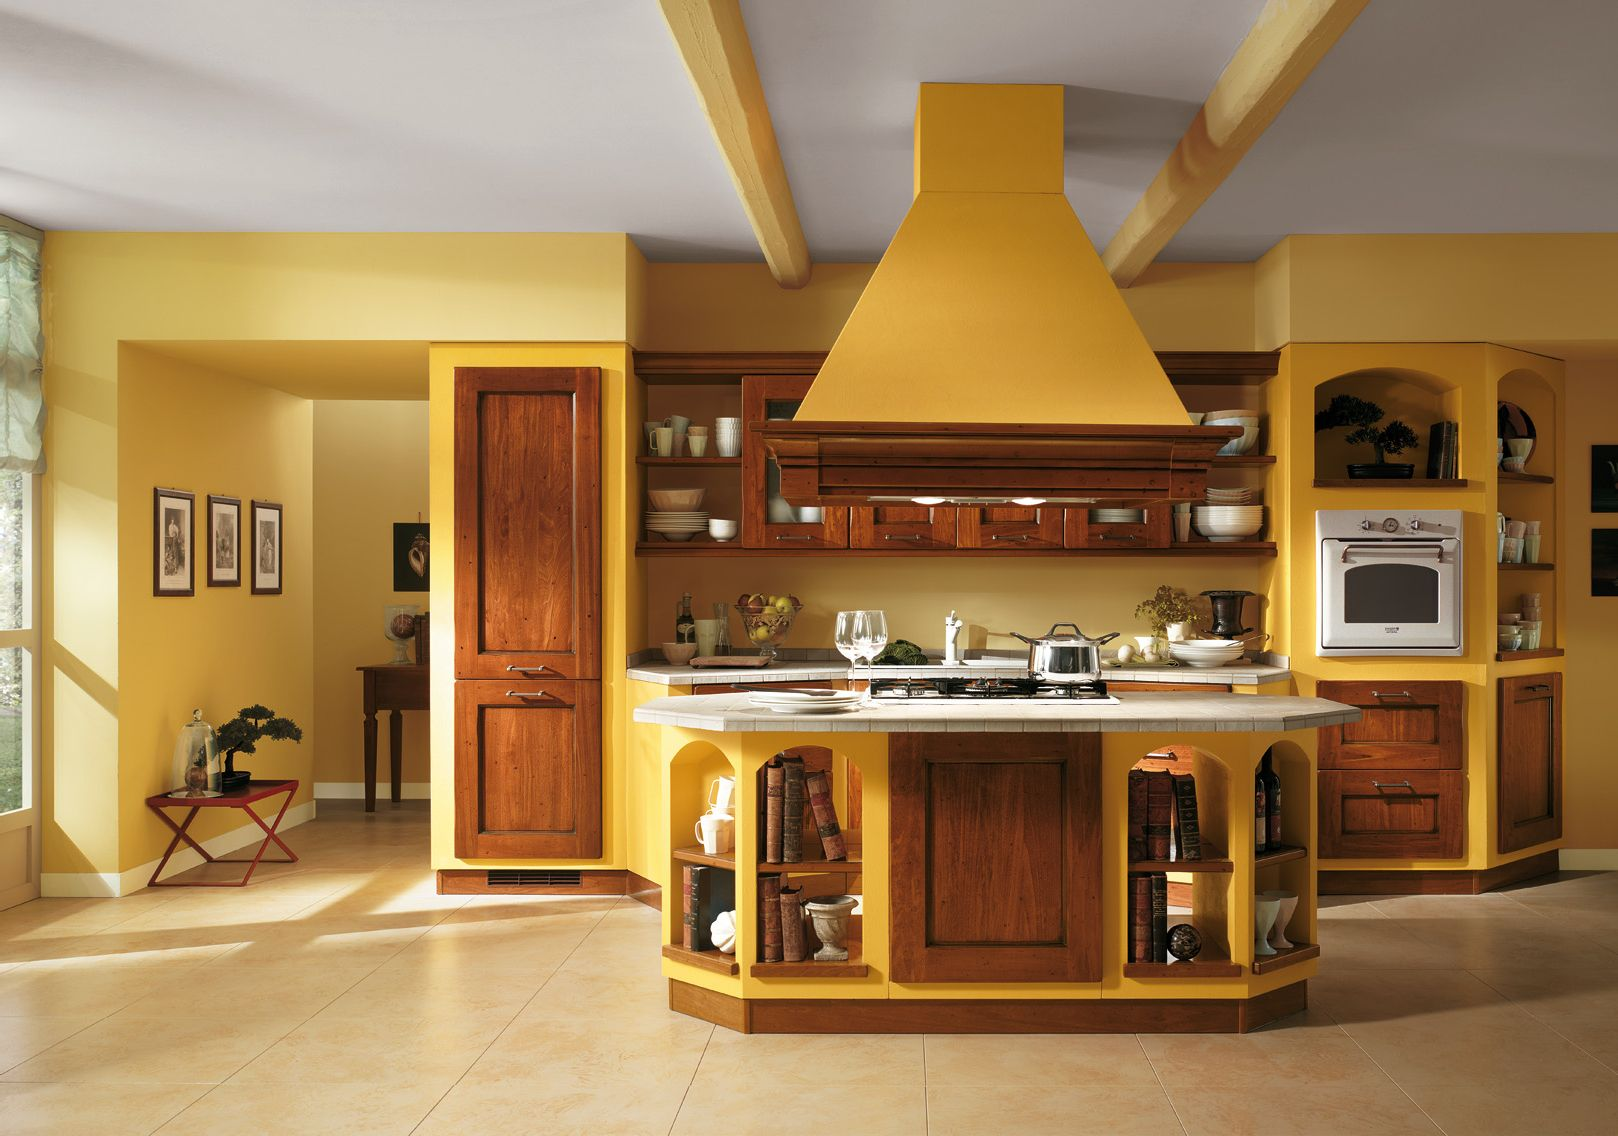 For Kitchen Paint Colors Italian Kitchen Color Schemes For Open Interior Design Big Chill